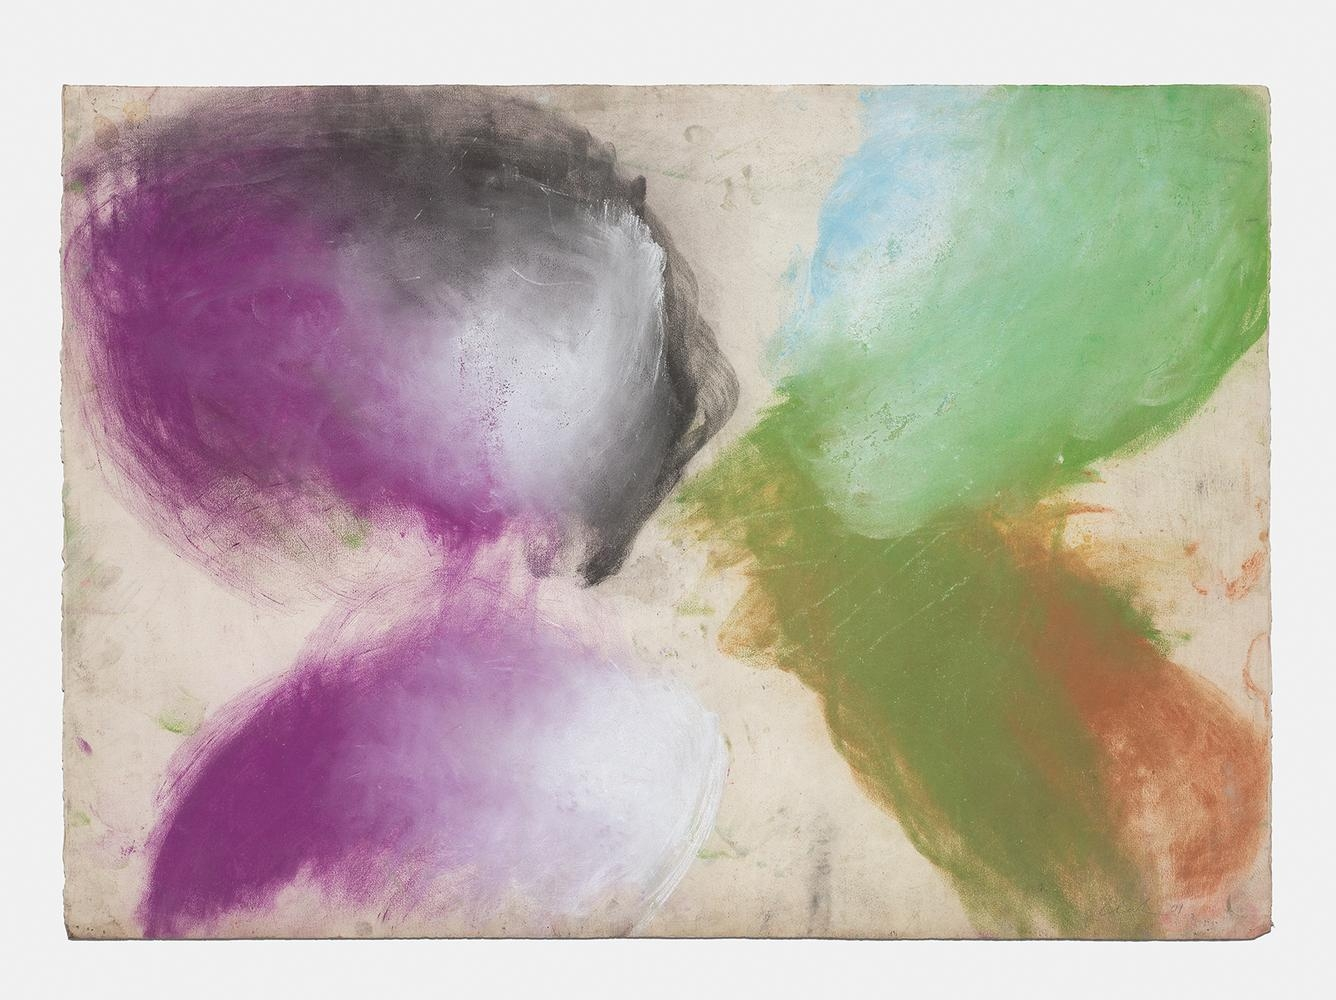 Ed Clark Untitled 2001 dry pigment on paper 29 1/4 x 41 1/2 inches (74.3 x 105.4 cm)